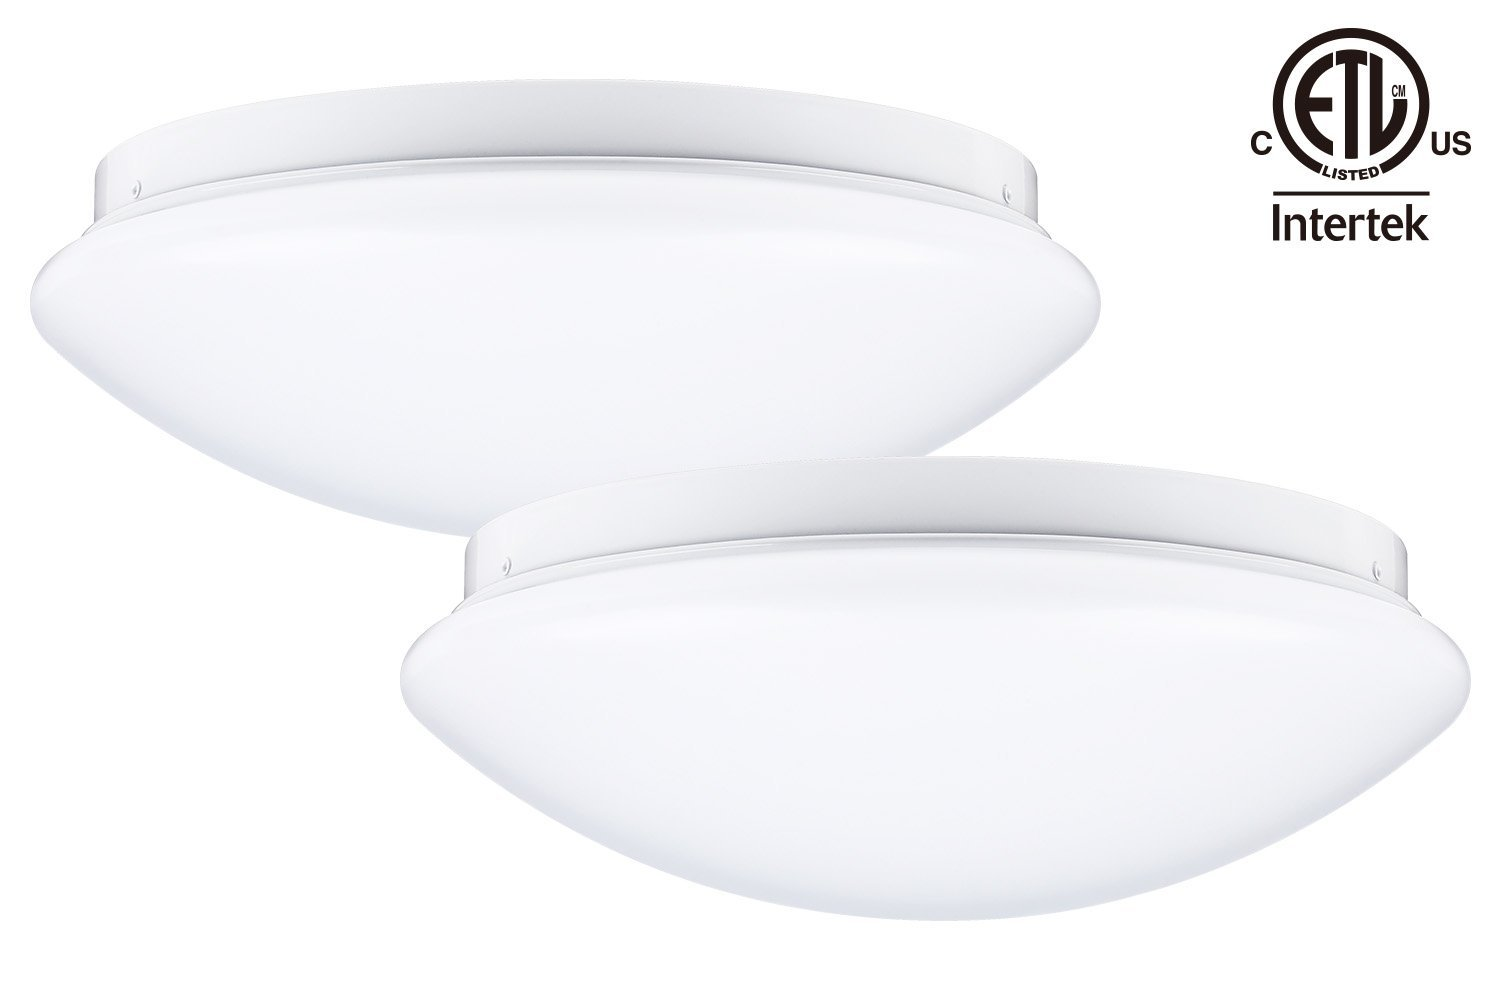 12-Inch LED Flush Mount Ceiling Light, 16W (86W Fluorescent Equivalent) Dimmable, 3000K Warm White, 120V, ETL-listed... by